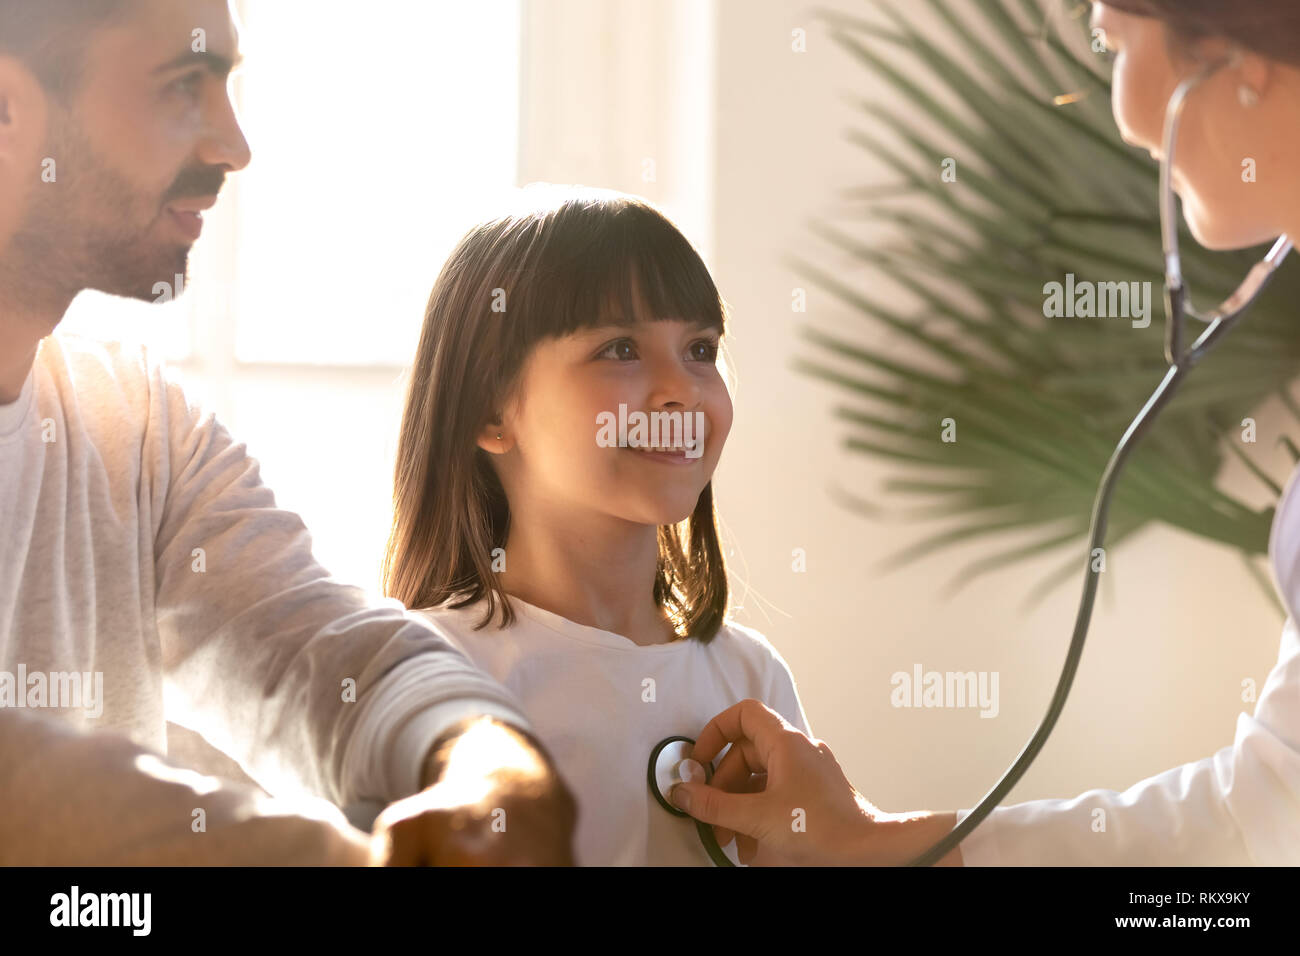 Female pediatrician holding stethoscope examining child visiting doctor with father - Stock Image